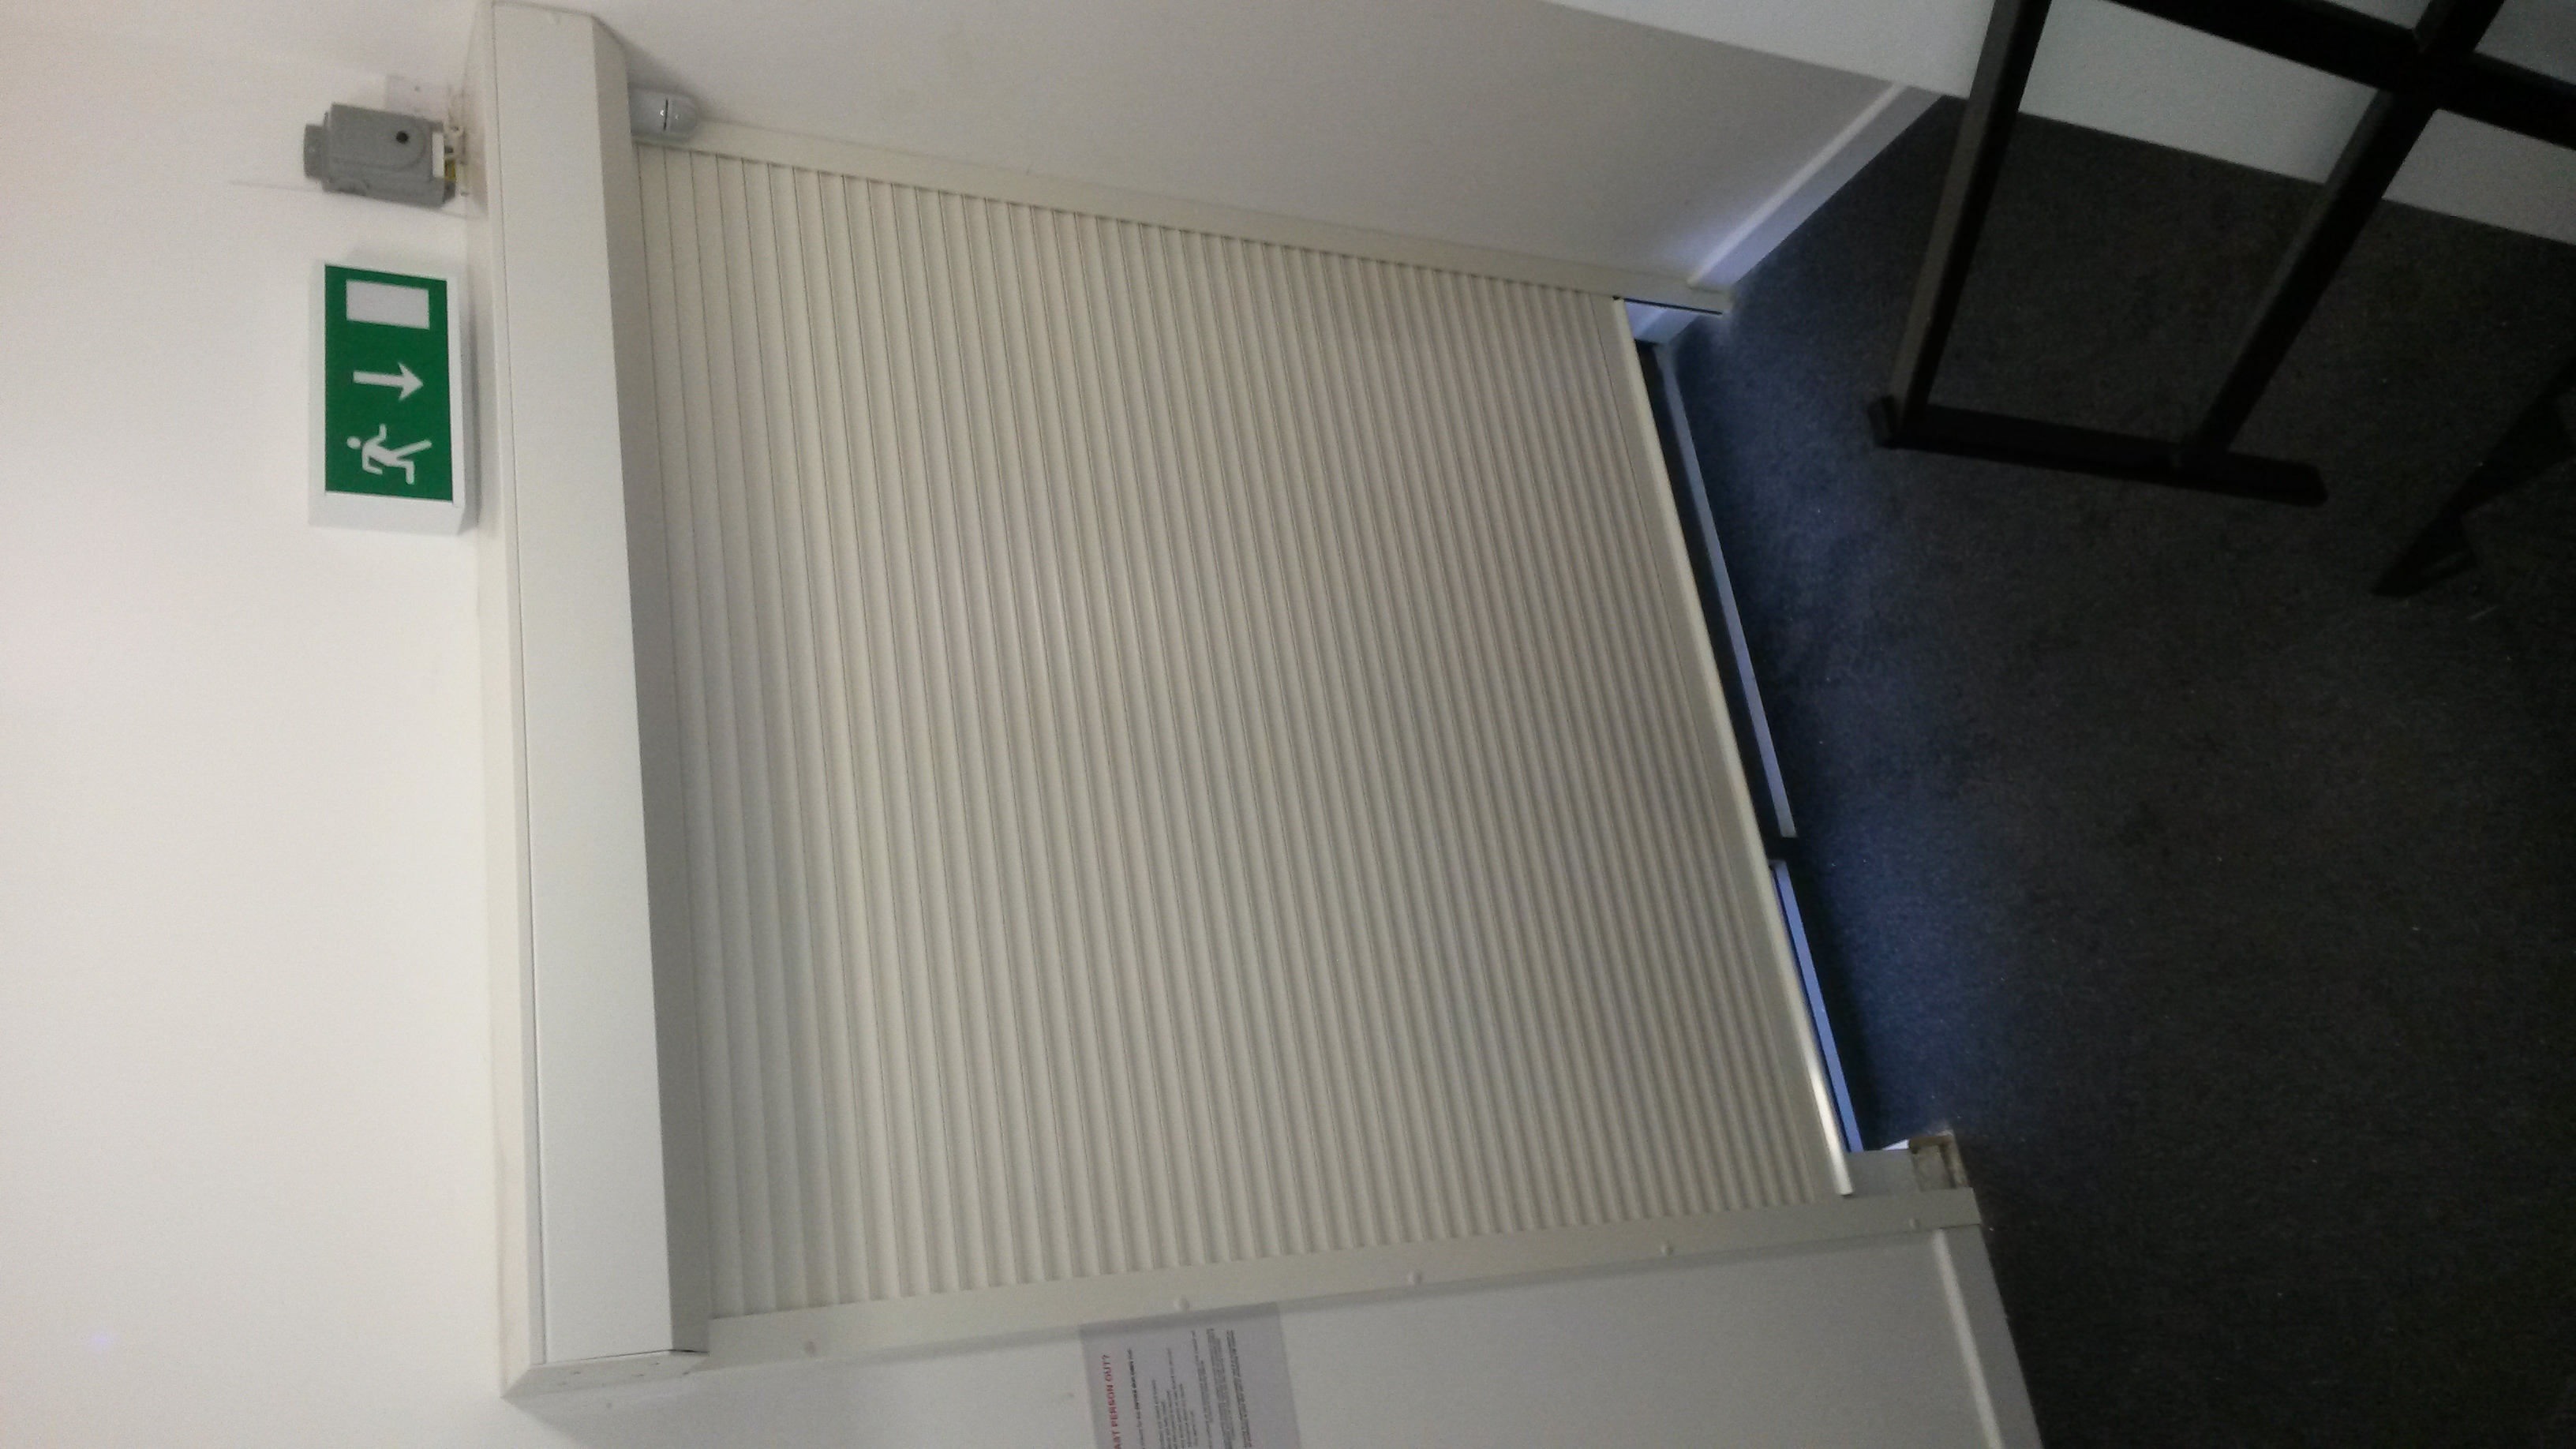 Ashford Security Ltd - Shutter - Internal - External - Shutters - Maintenance - Repairs